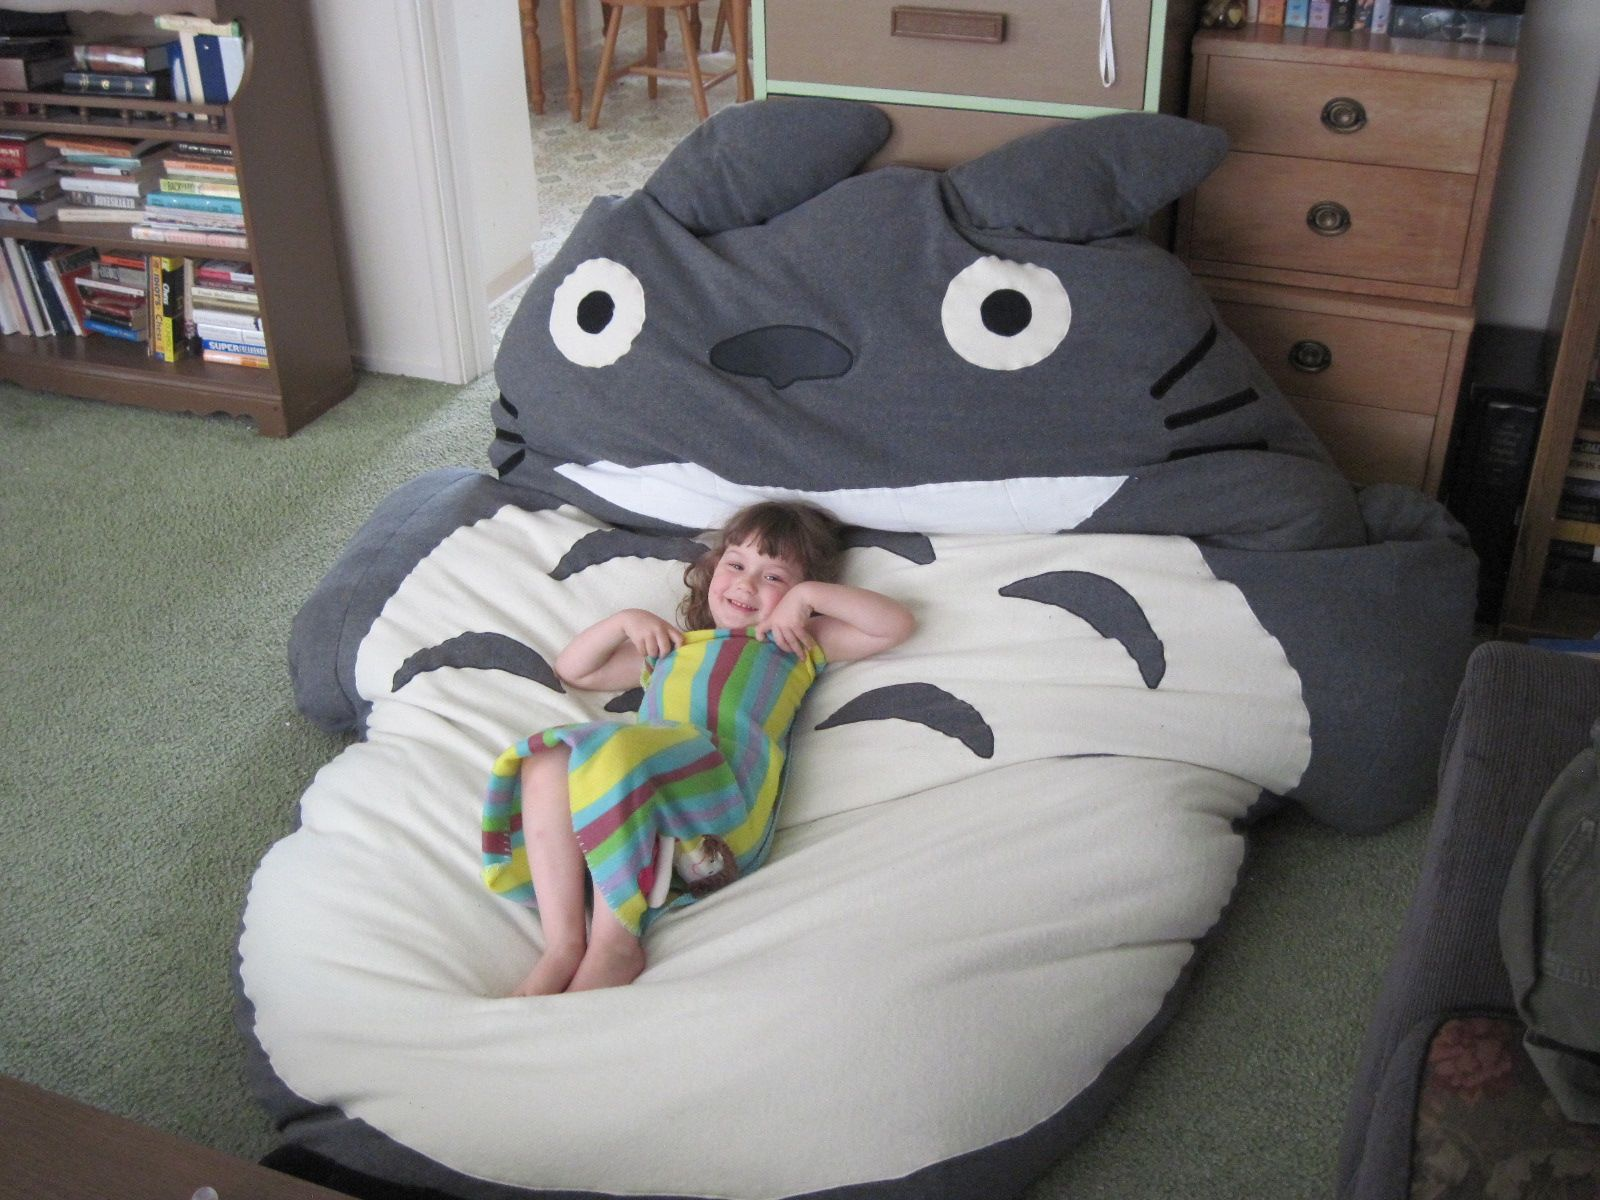 How To Make A Bean Bag Chair Out Of Old Clothes Office Weight Capacity 300 Lbs Totoro 4314 Jpg 16001200 Diy Stuffies Pinterest